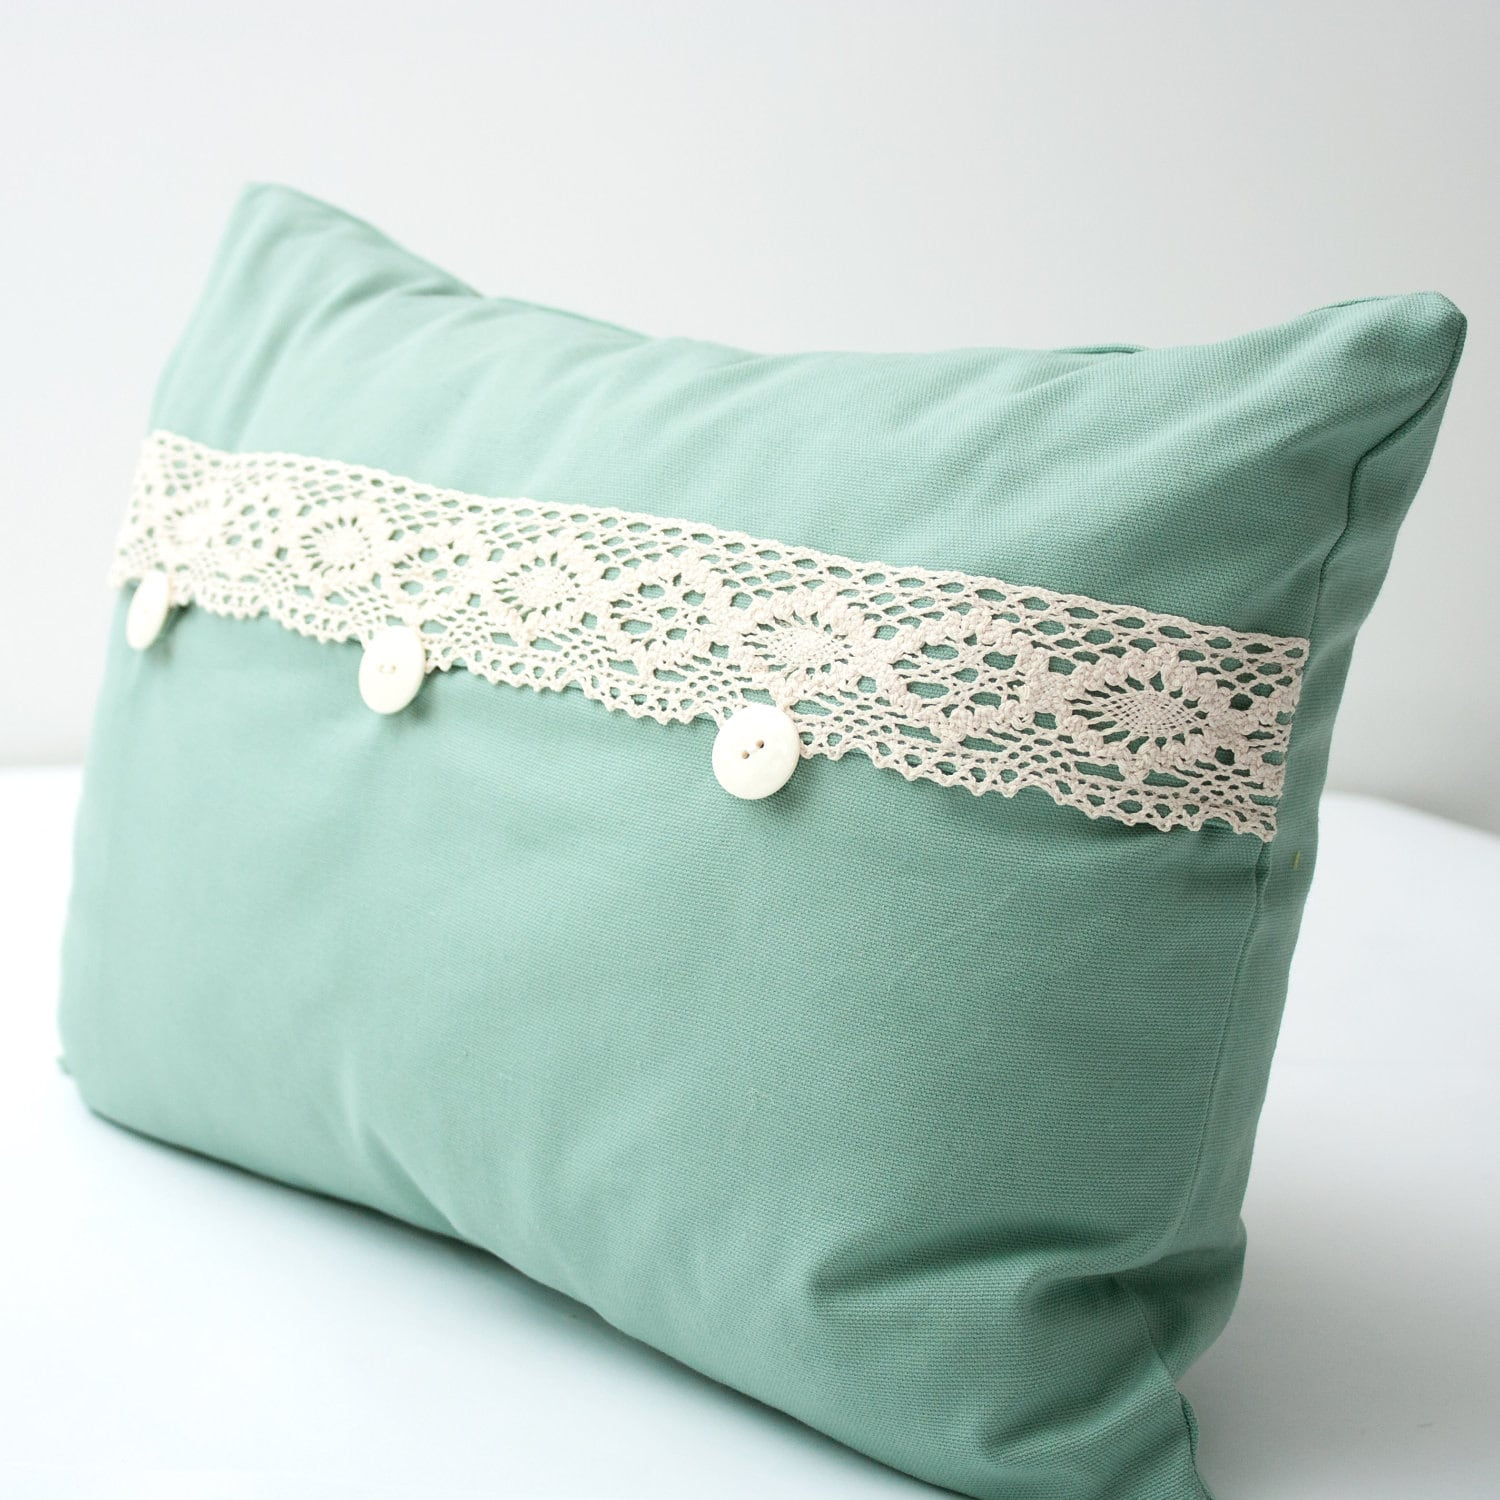 Teal Decorative Bed Pillows : Teal and Lace Decorative Lumbar Pillow Cover by alexisandradesign